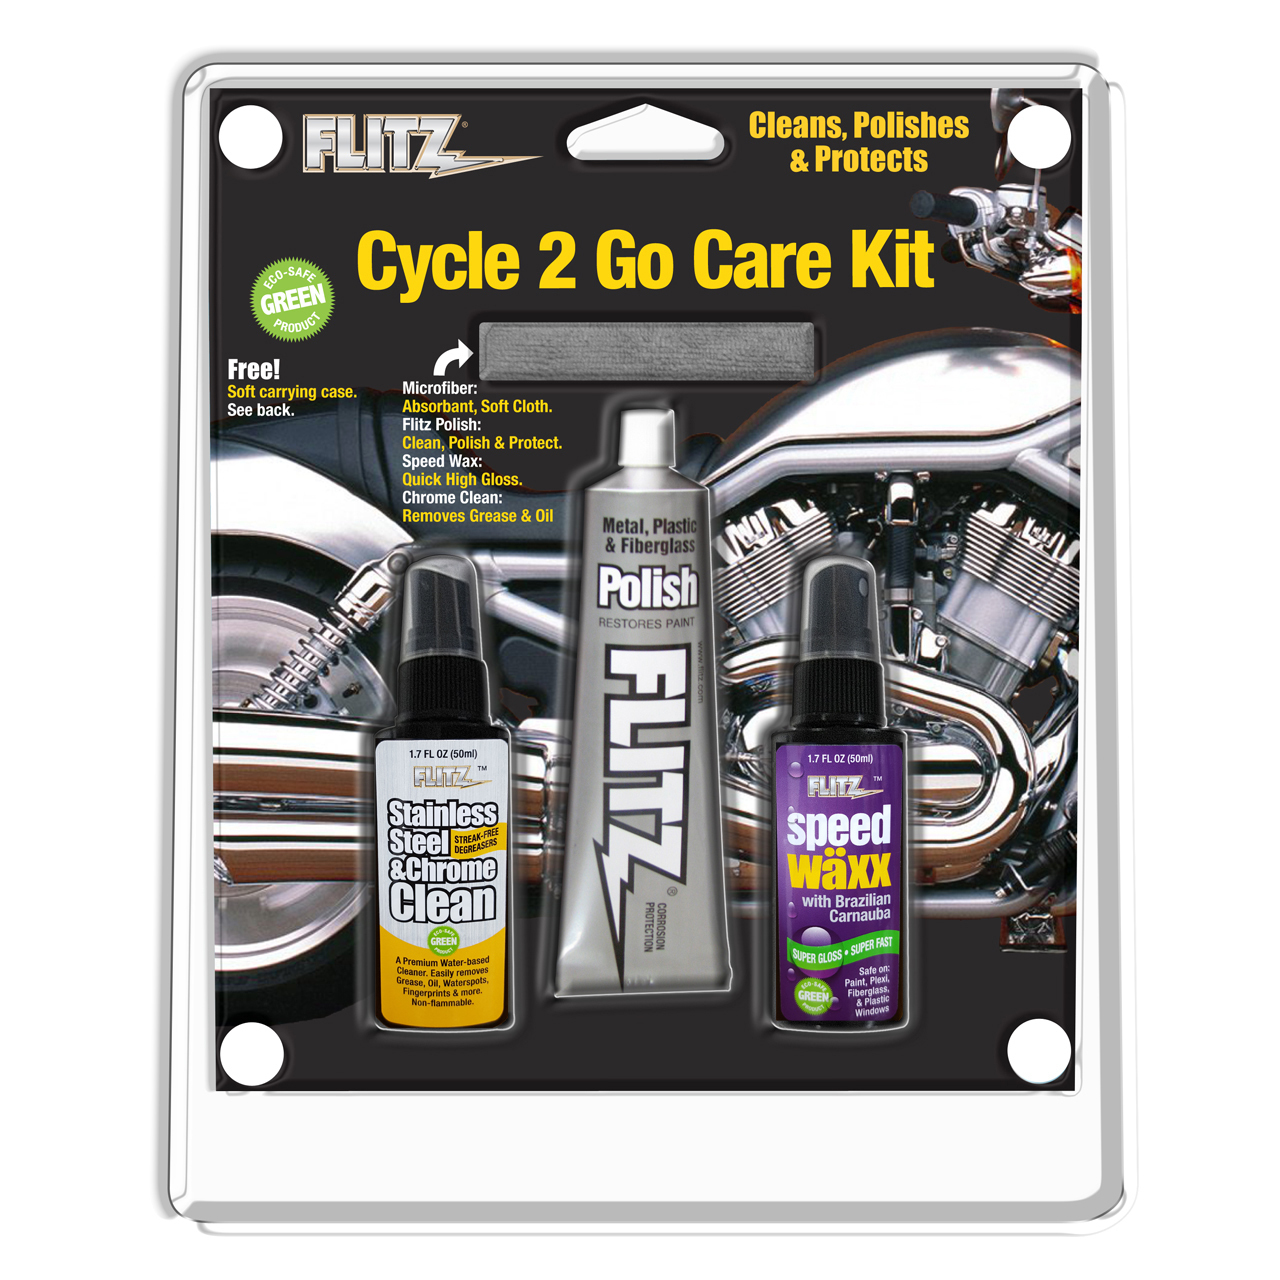 Cycle 2 Go Care Kit